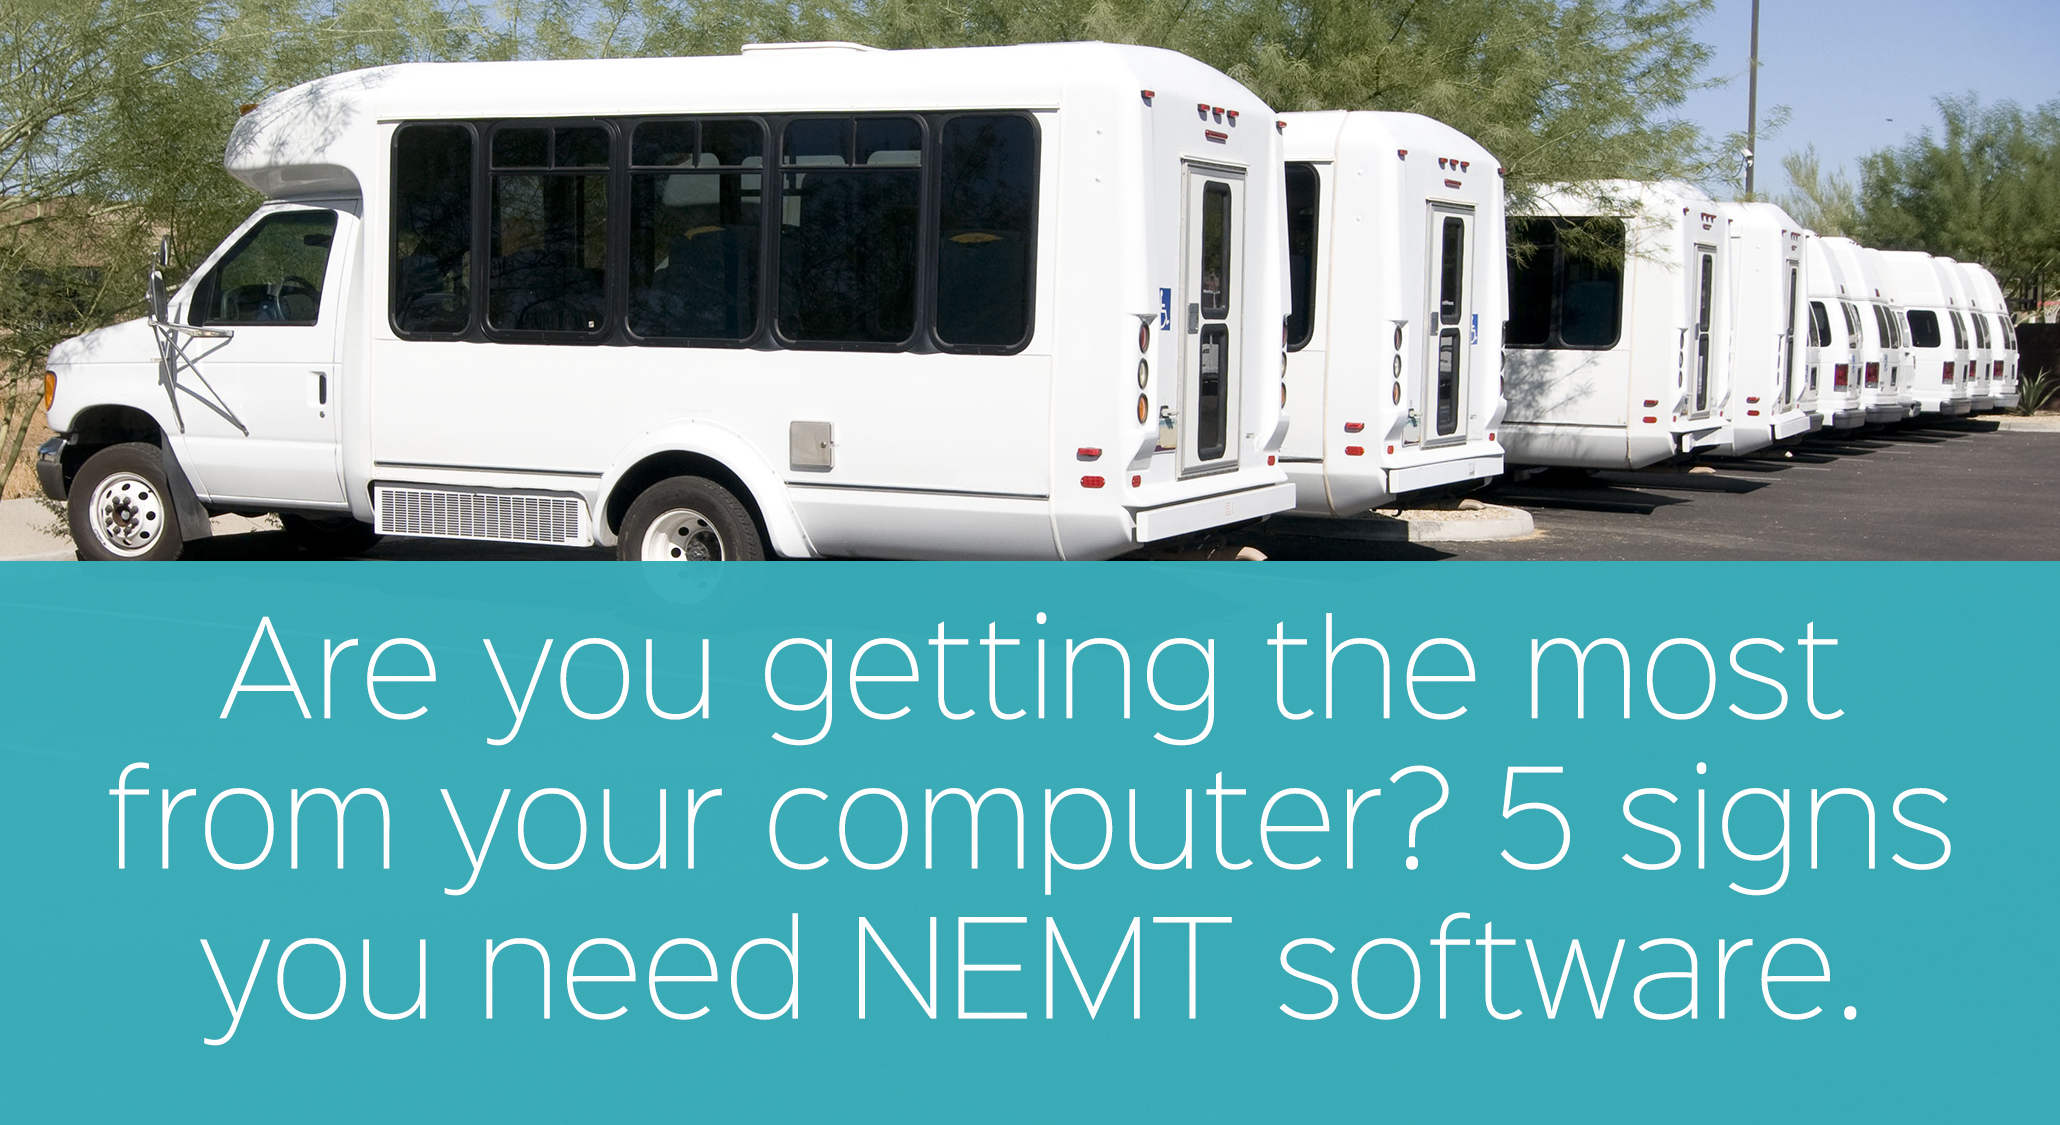 Are You Getting the Most From Your Computer? 5 Signs You Need NEMT Software